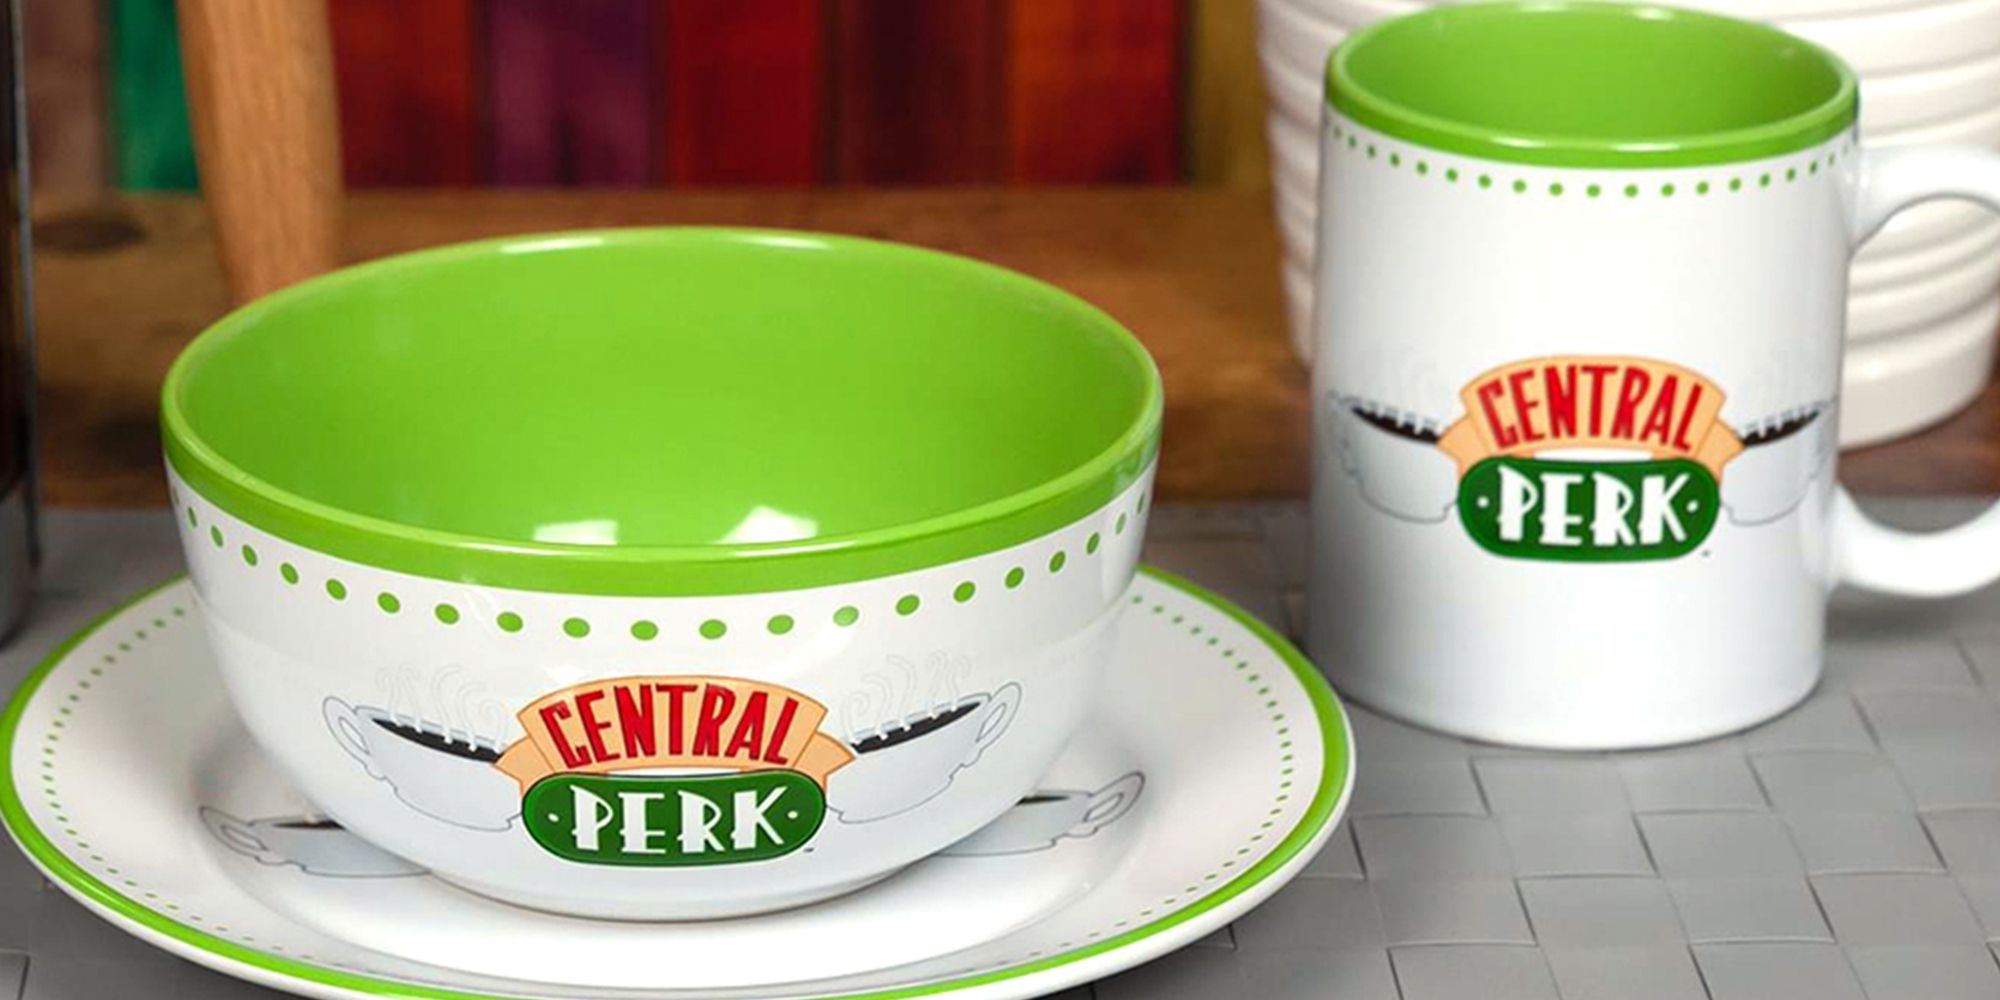 This New 'Friends' Central Perk Eating Set Will